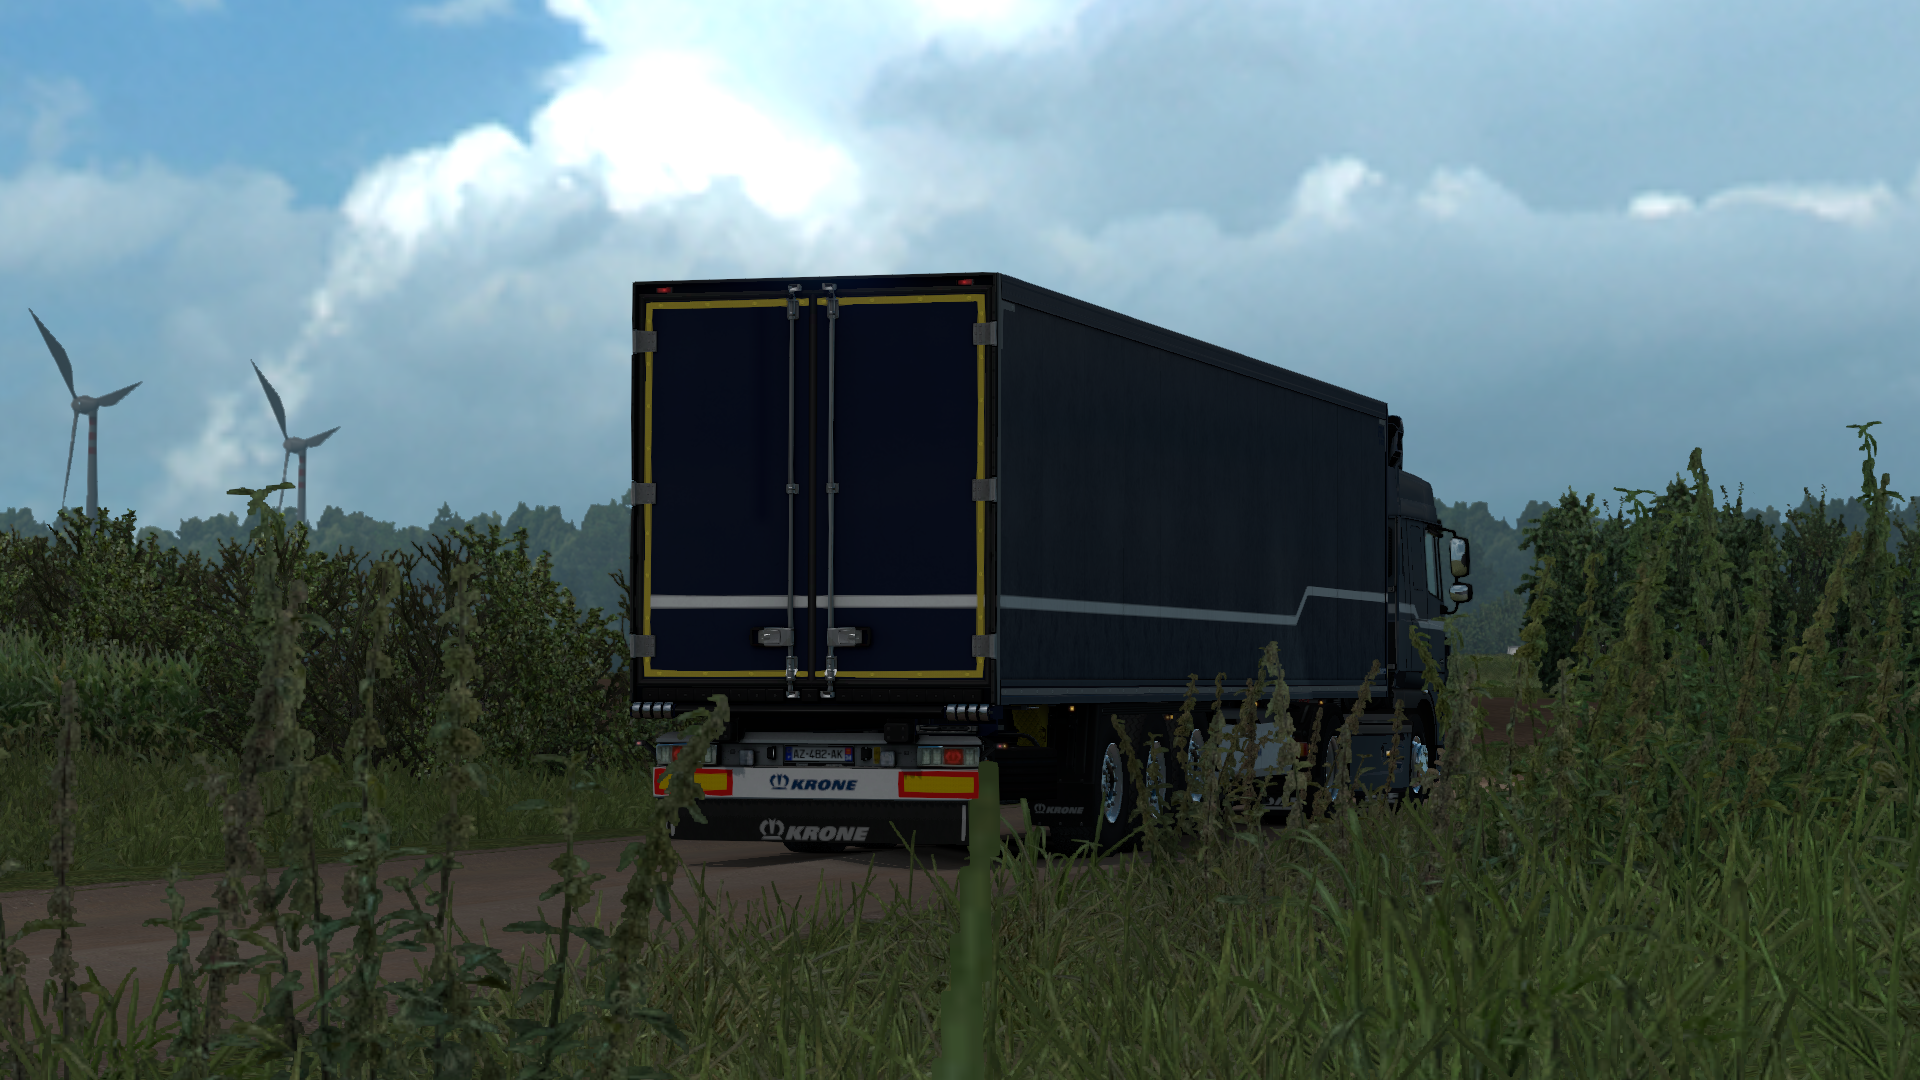 ets2_20181209_143320_00.png